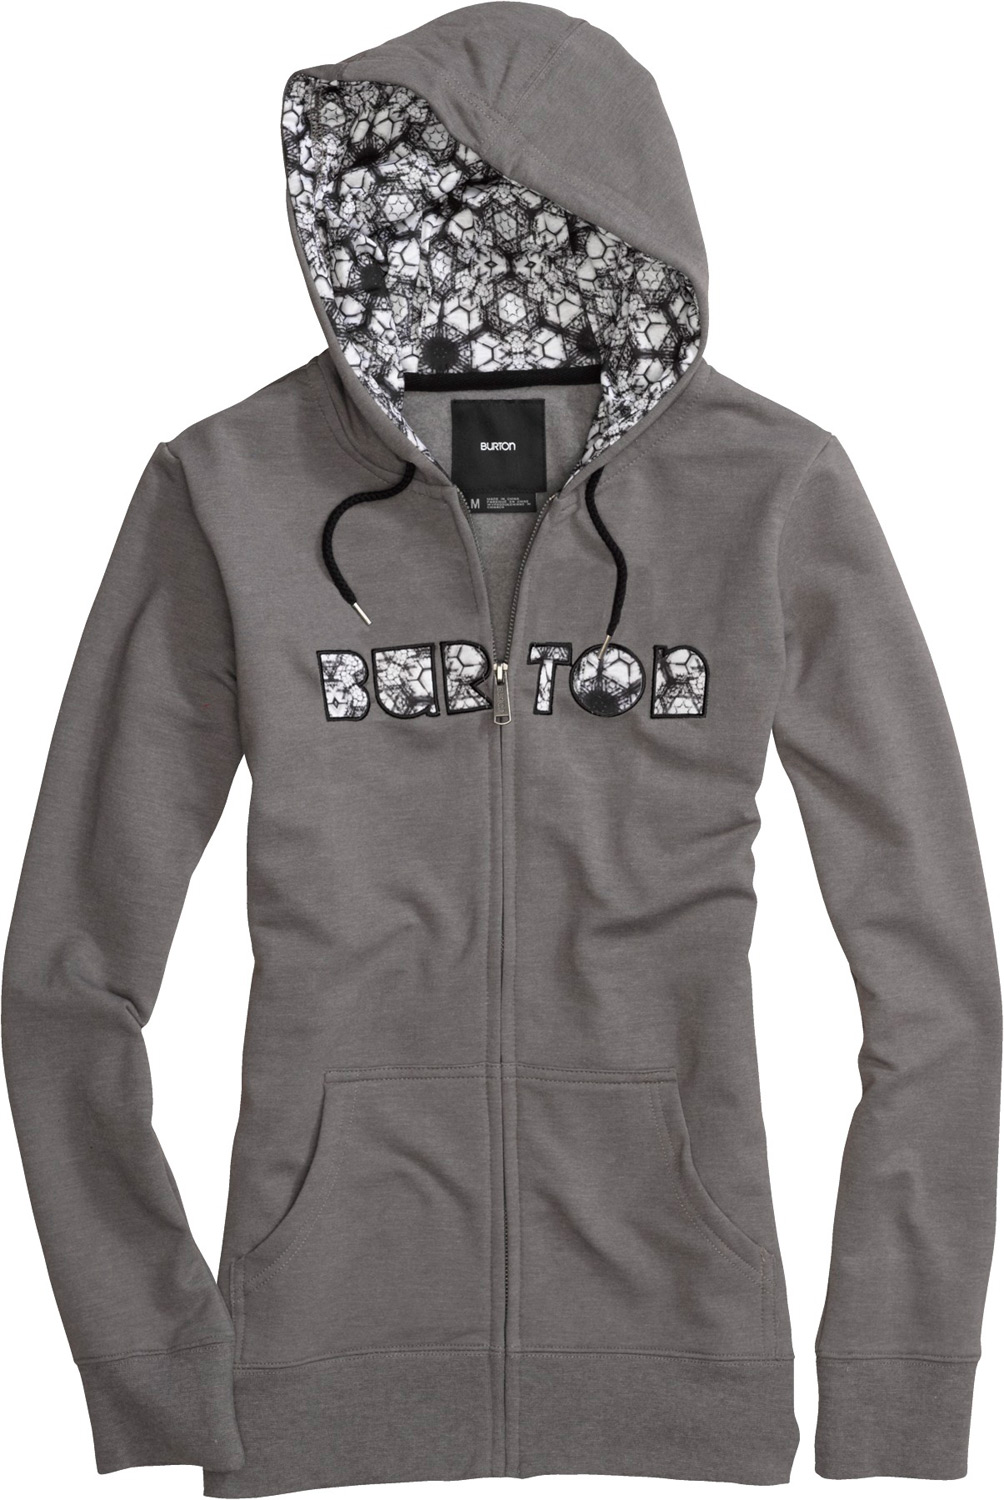 Snowboard Key Features of the Burton Gravity Fullzip Hoodie: 85% Cotton, 12% Polyester, 3% Spandex Custom Printed Artwork on Hood Lining and Front Applique Regular Fit - $38.36